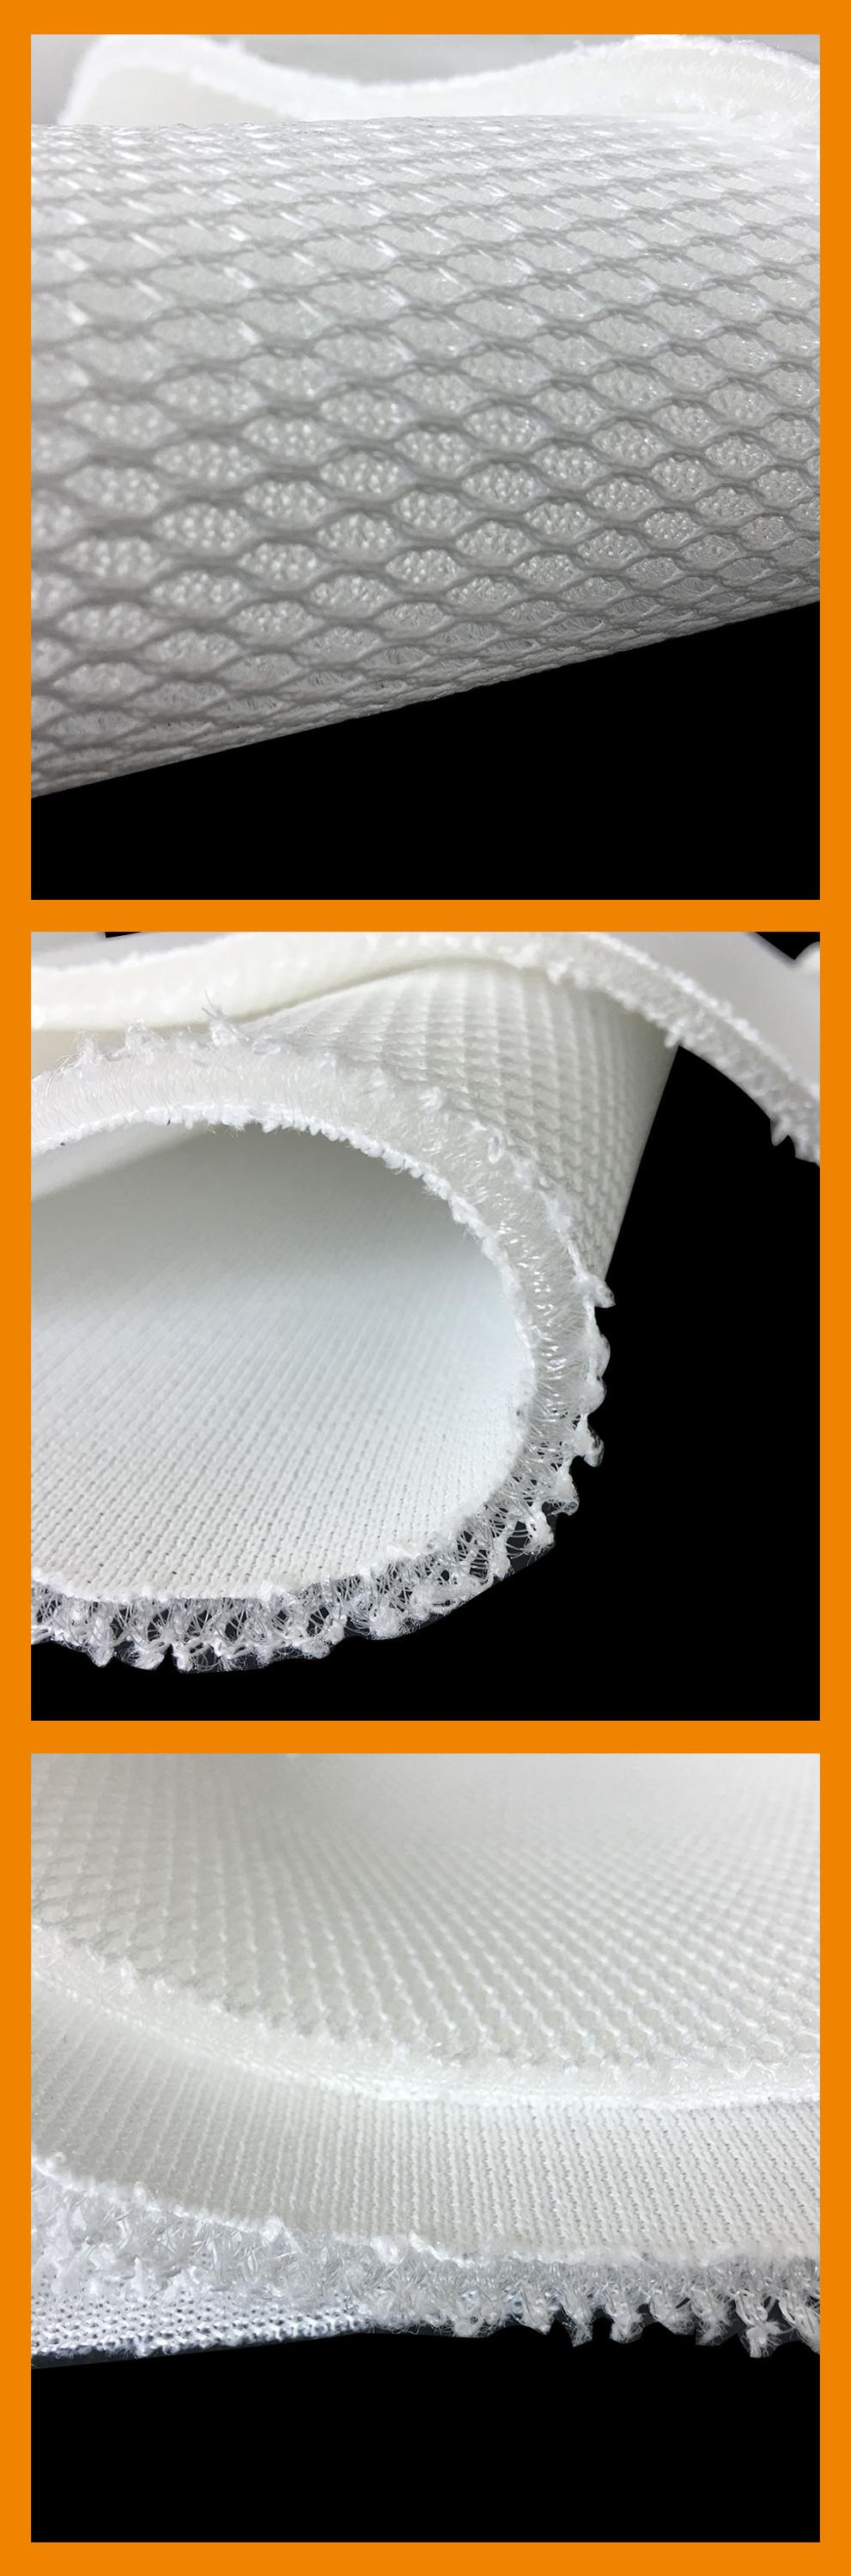 5mm thick mattress material air flow mesh fabric